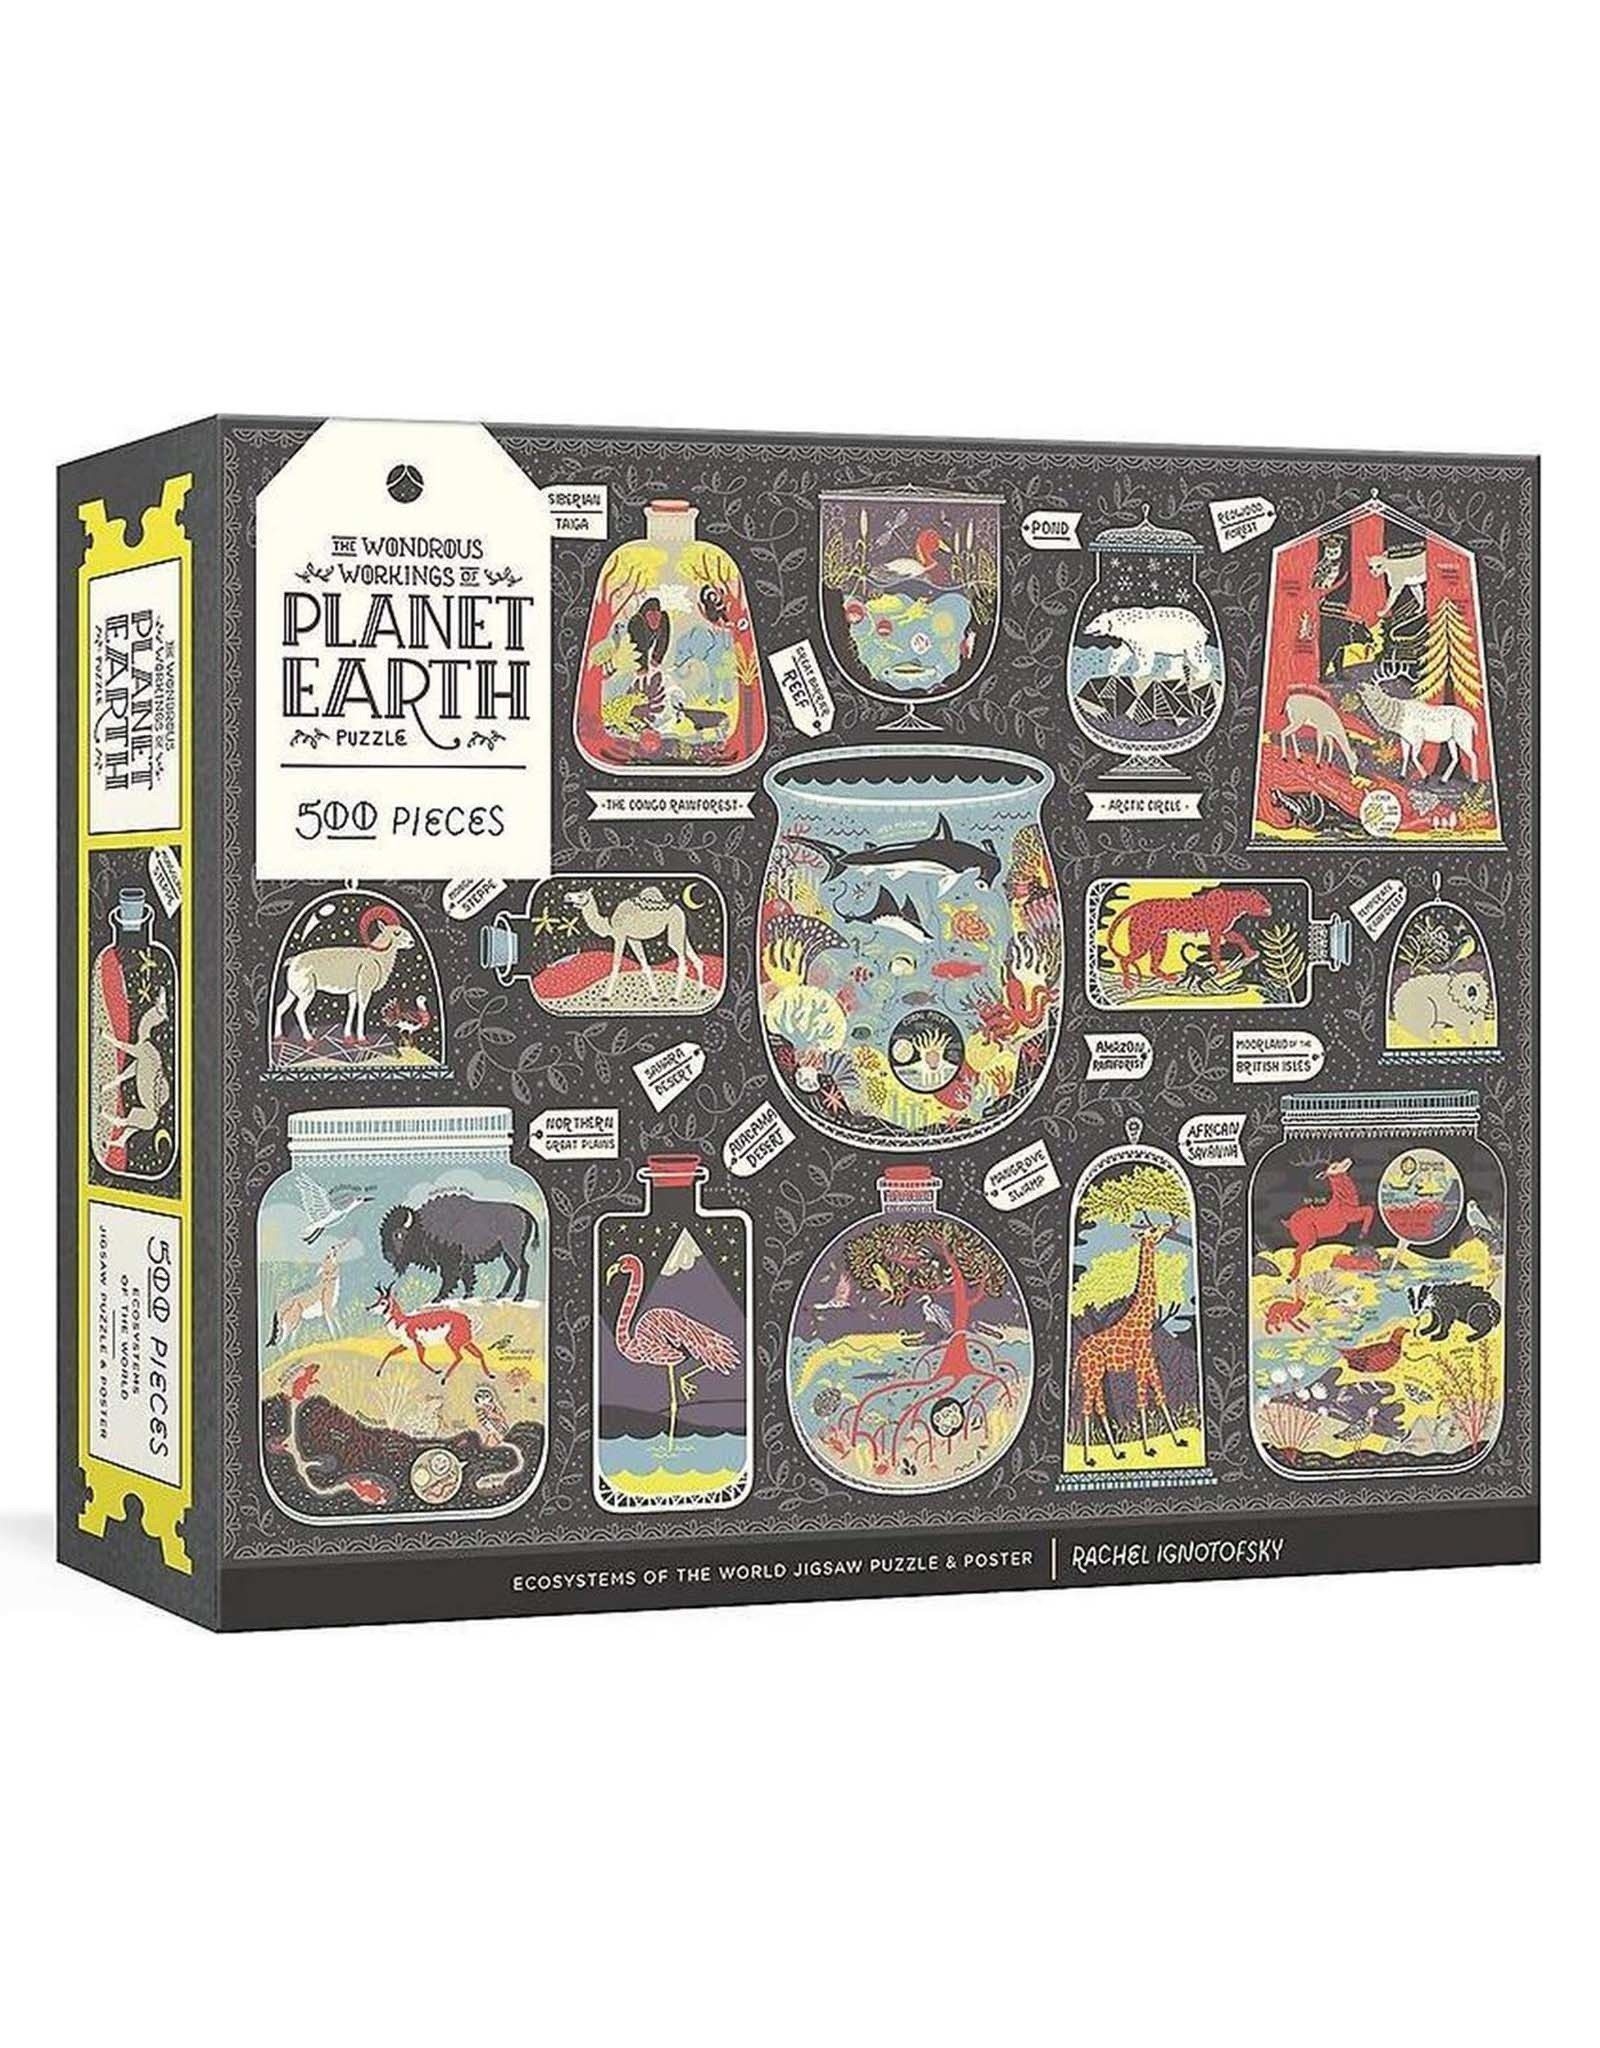 Wonderous Workings Of Planet Earth Puzzle